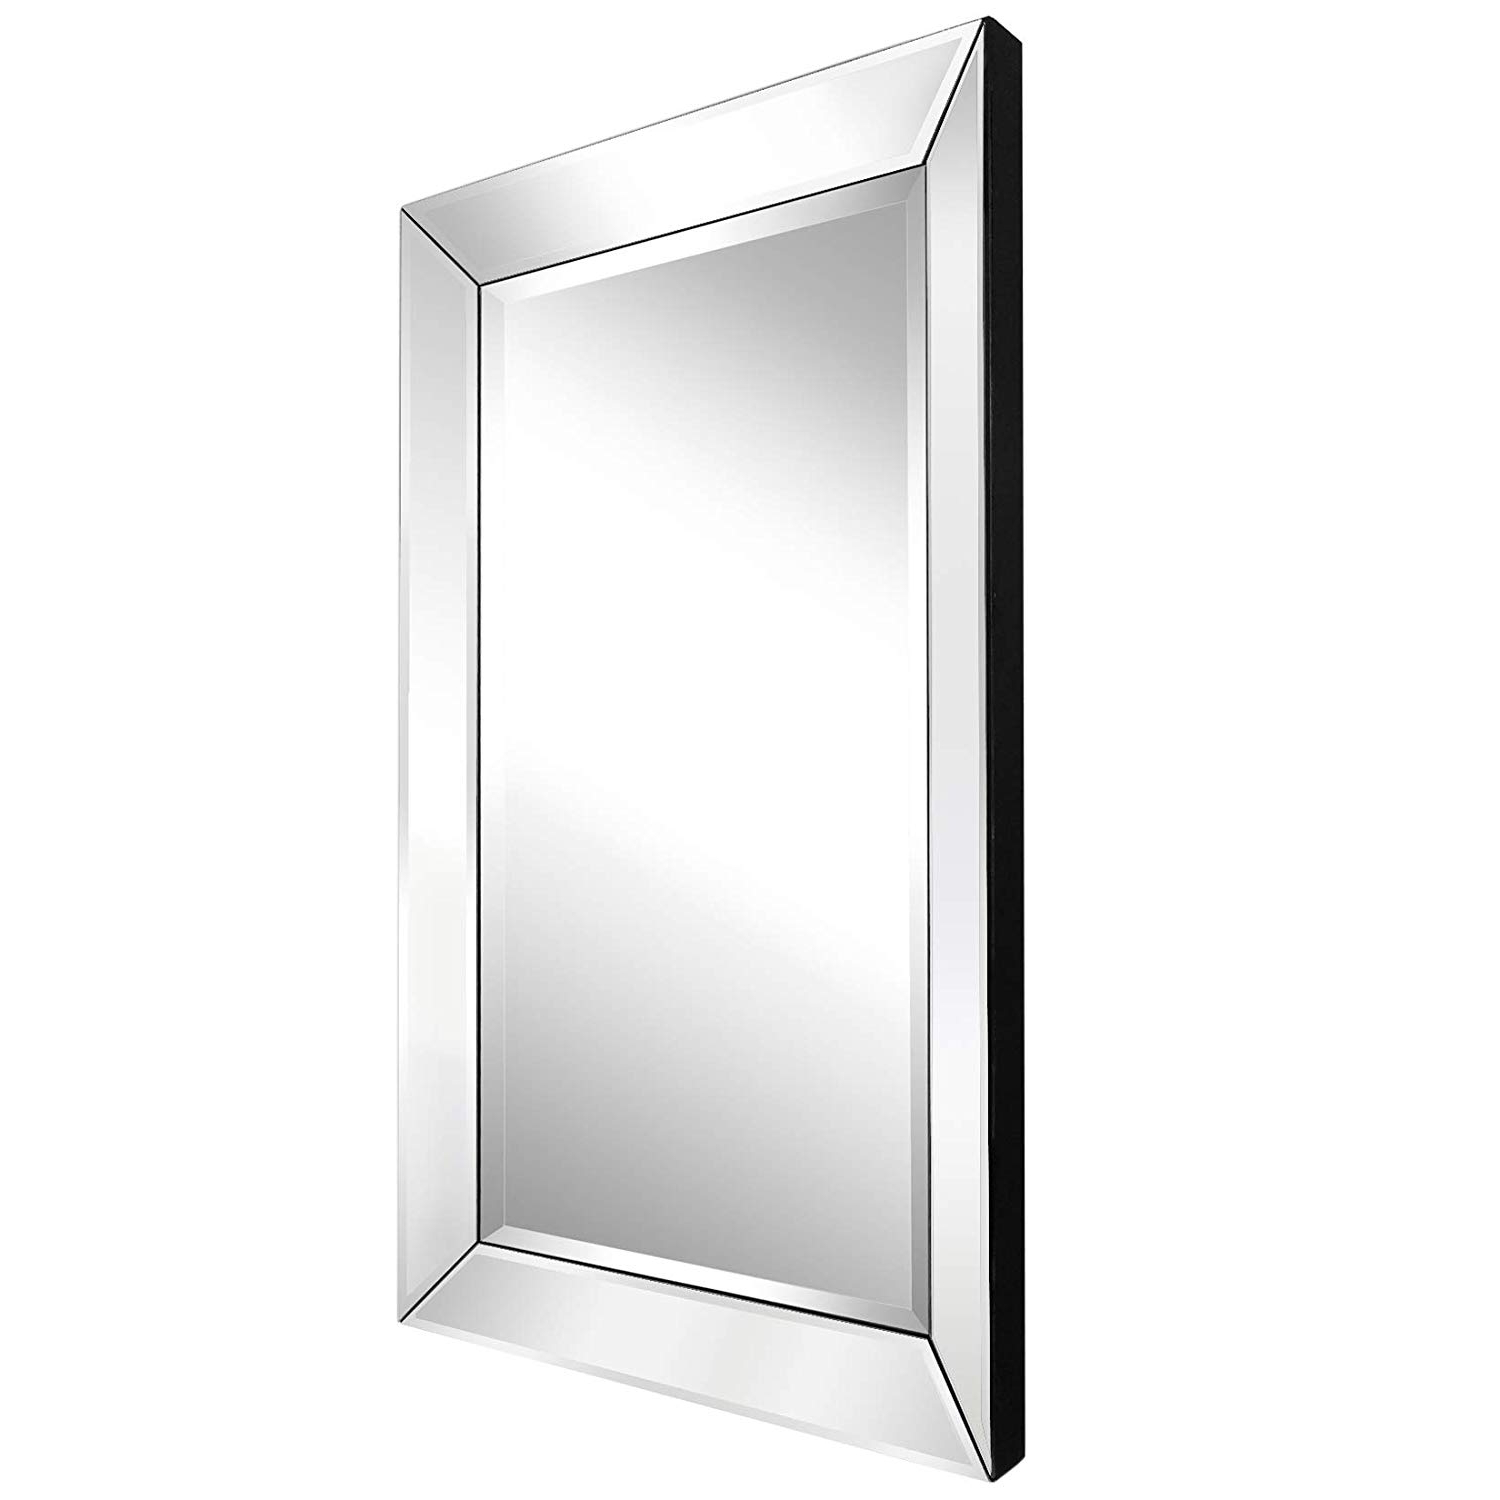 "Trendy Large Wall Mirrors For Bedroom Intended For Mirror Trend 24""X36"" Large Prism Beveled Wall Mirrors For Bathroom Mirrors Decorative Wall Mirror For Bedroom Silver Mirror For Hall And (View 18 of 20)"